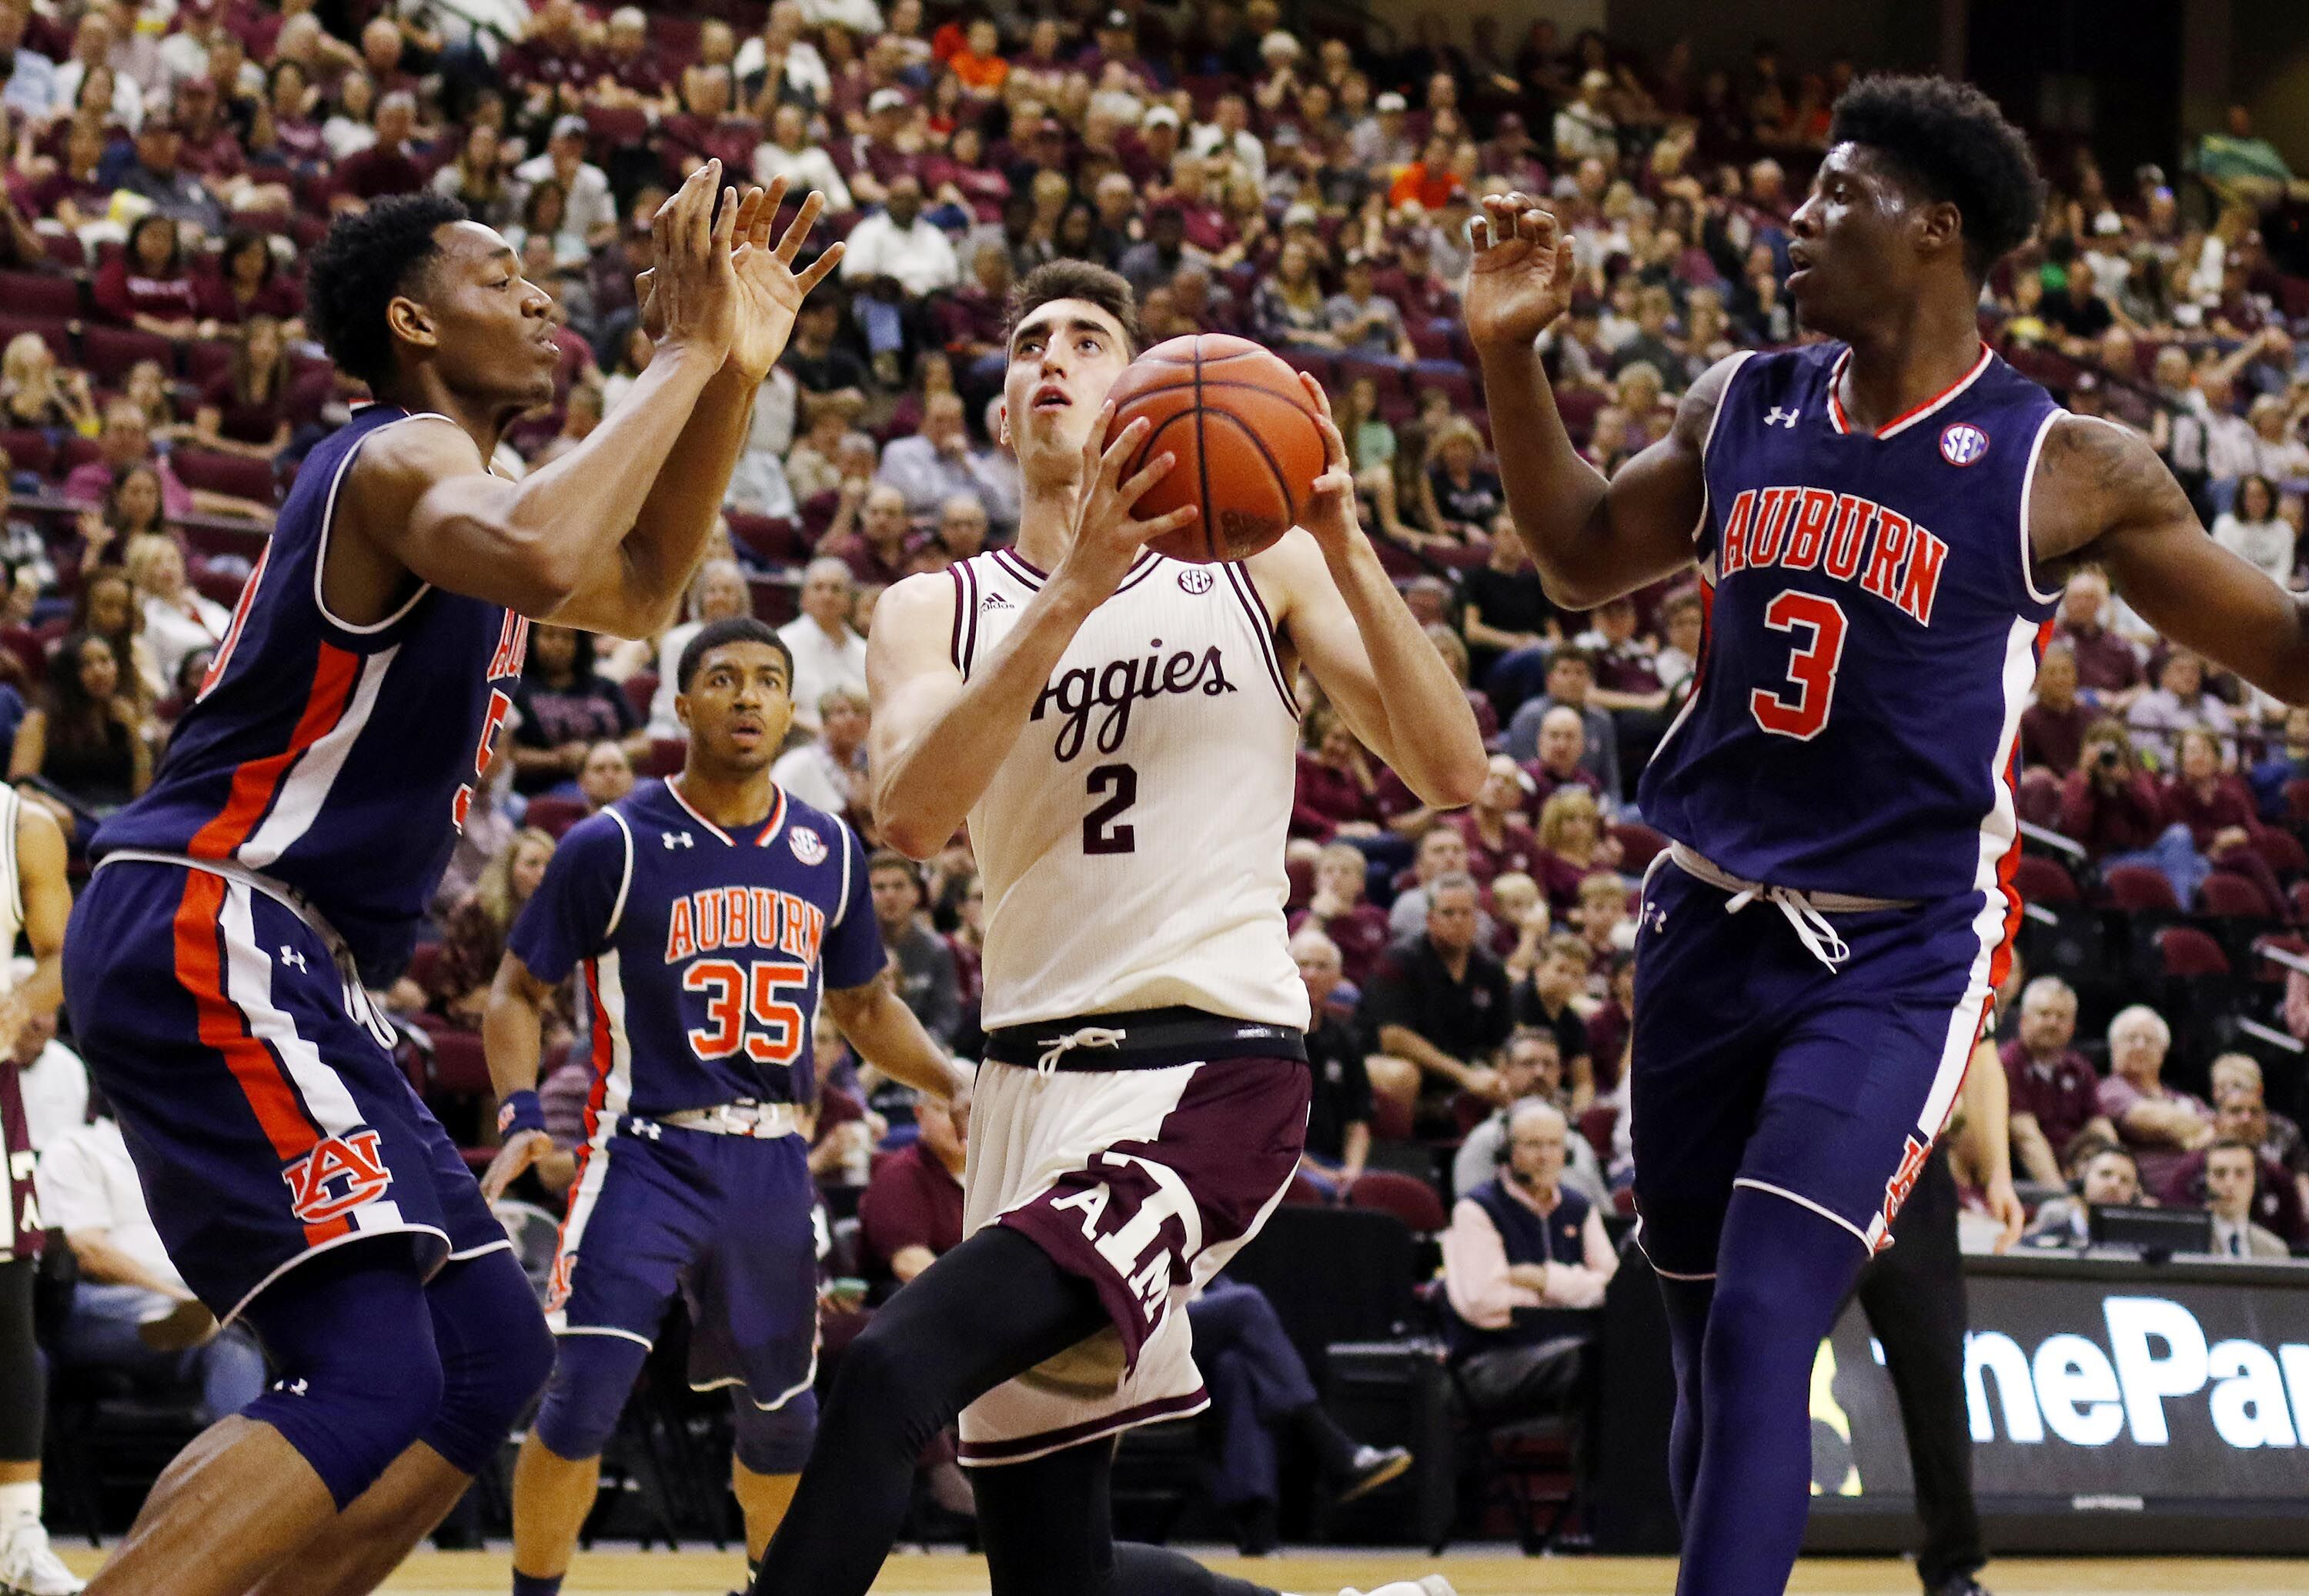 Image result for Providence Friars vs Texas A&M Aggies basketball live